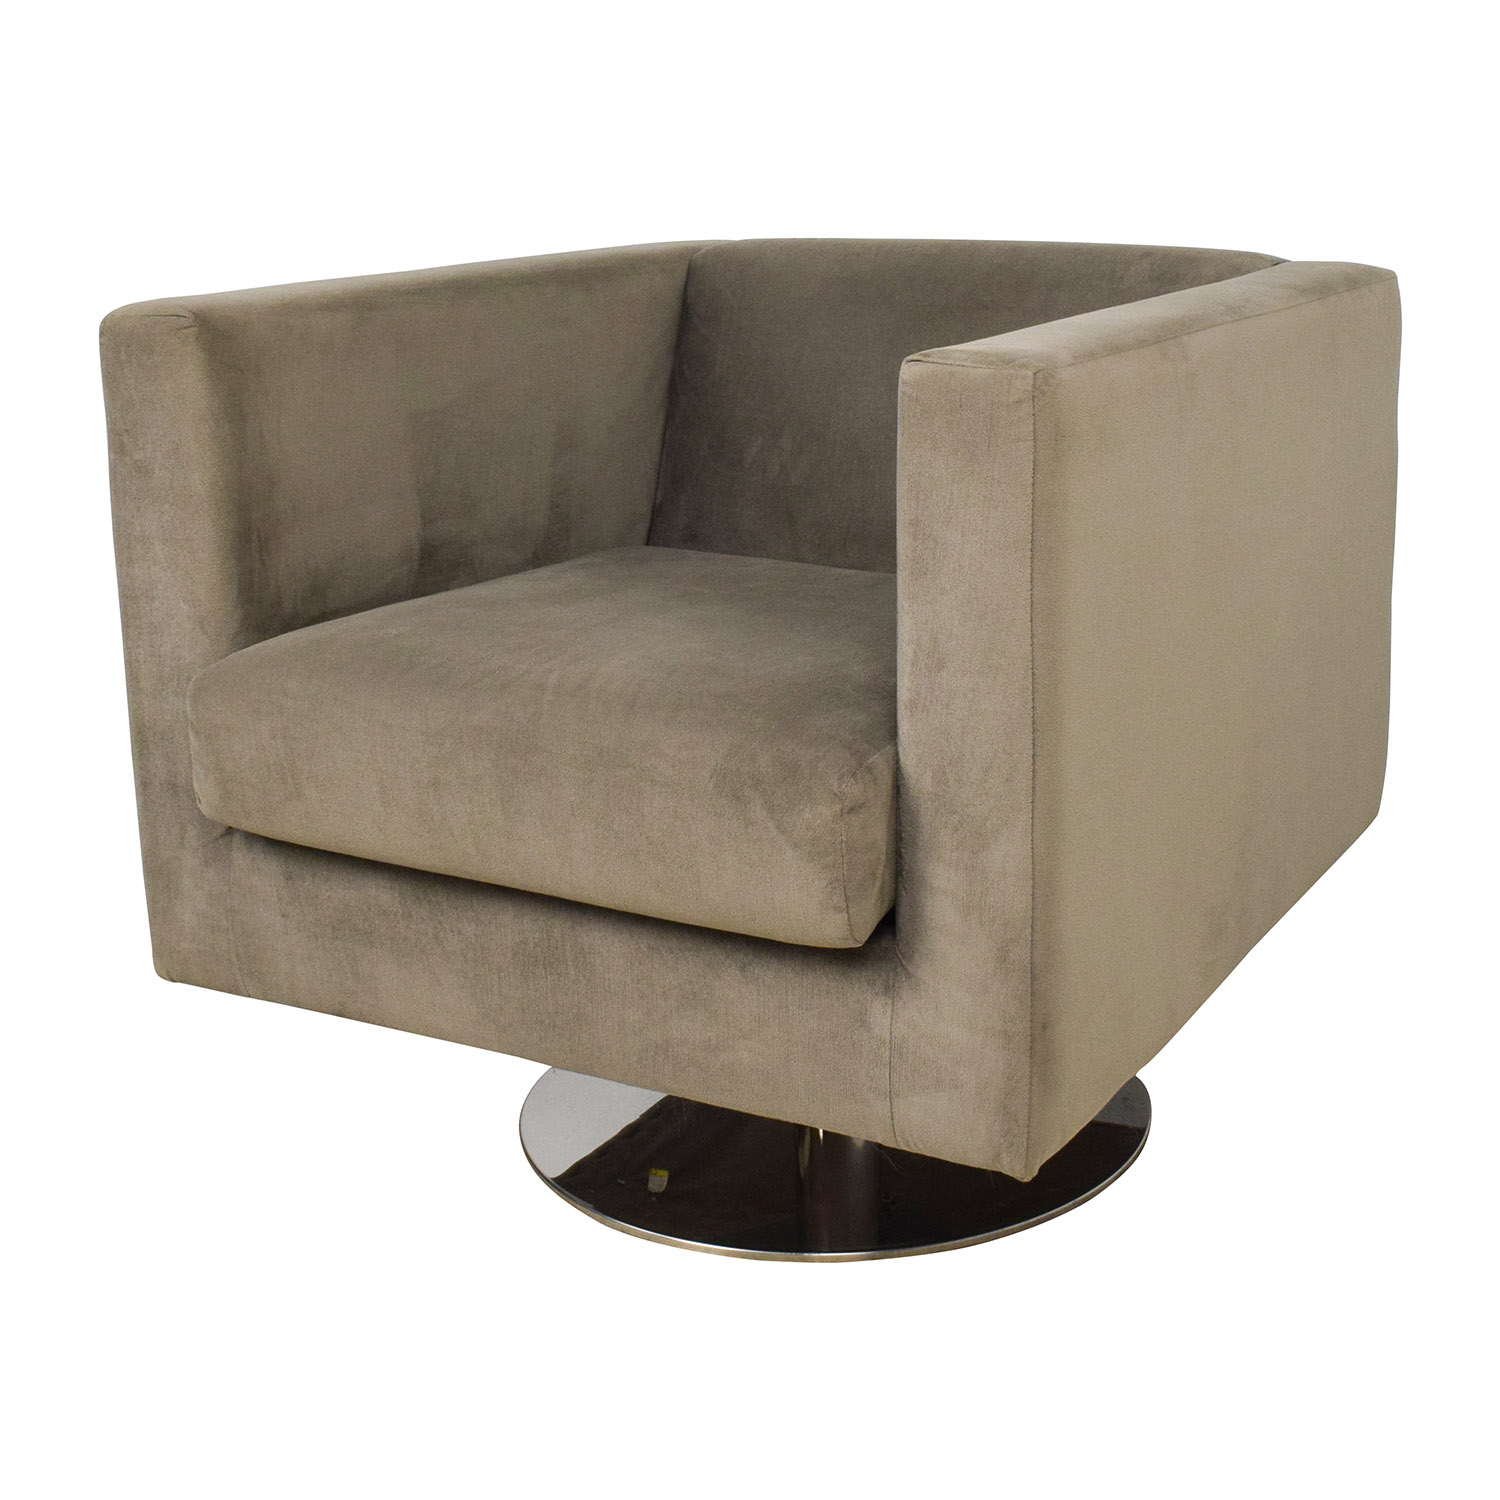 79 Off Rowe Rowe Grey Swivel Chair Chairs